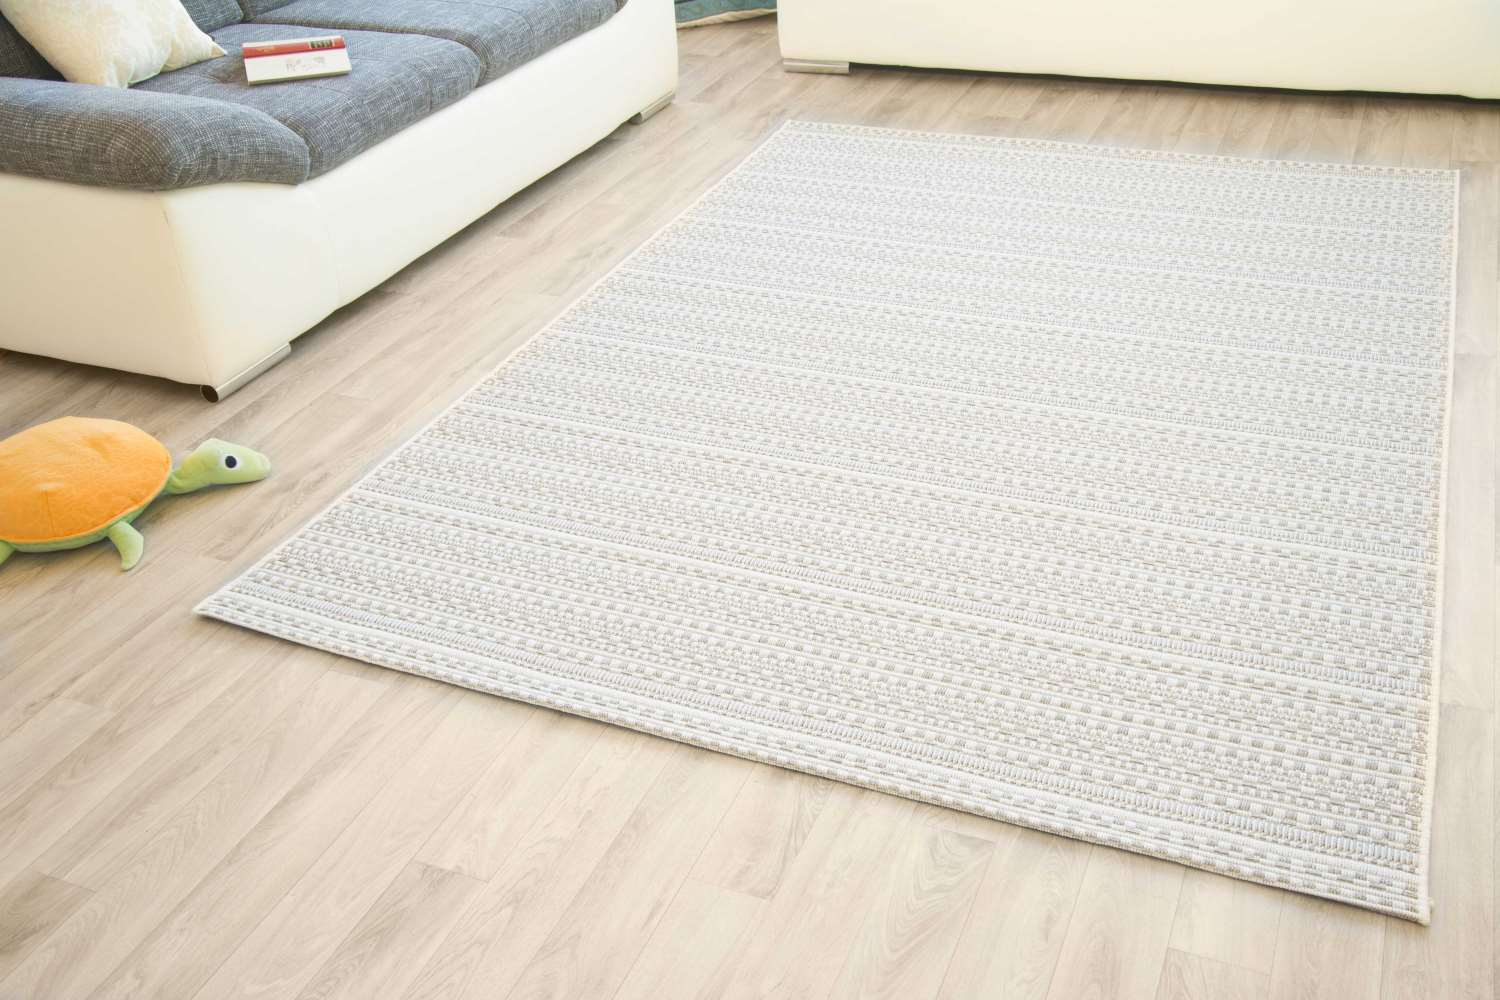 Design teppich  In- und Outdoor Teppich Dalarna Design - Vintage | global-carpet